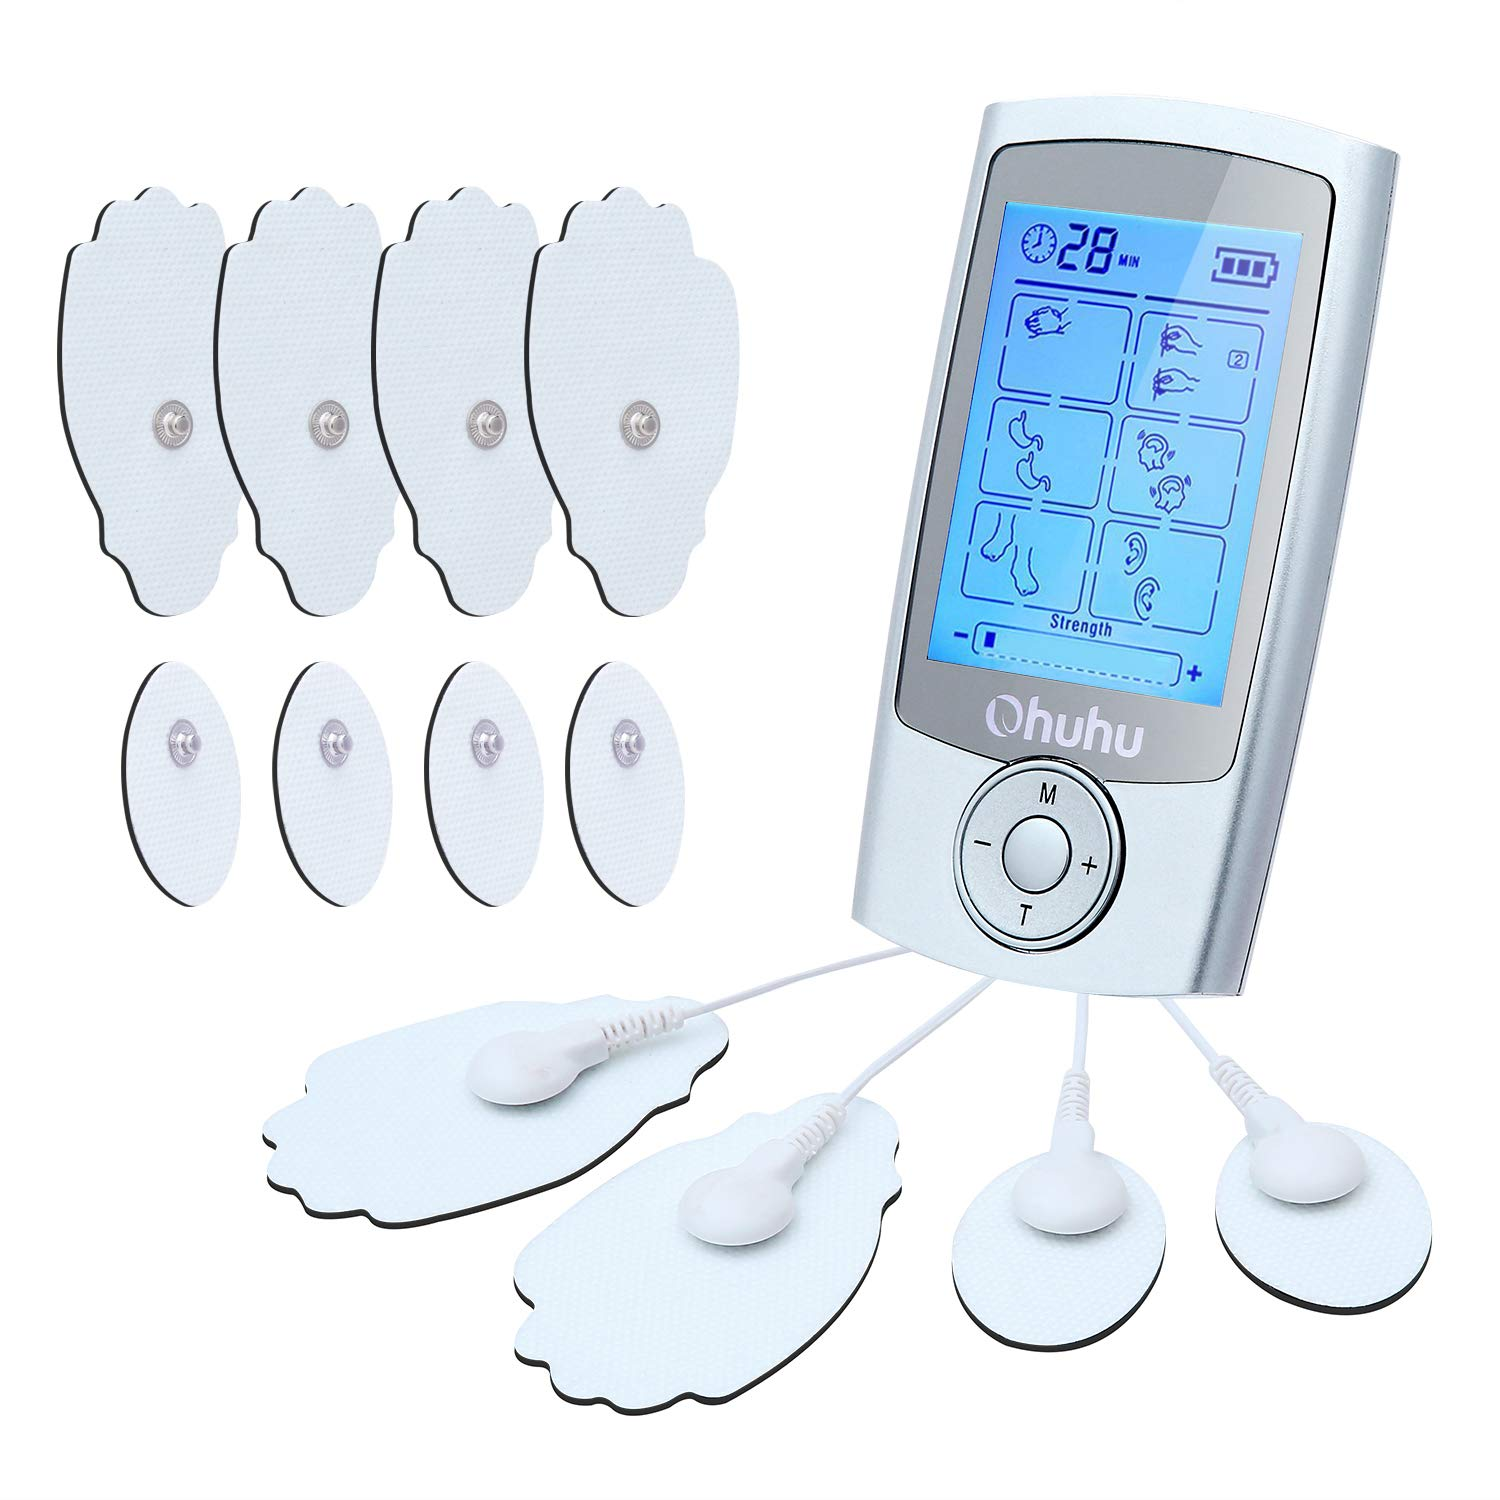 FDA Cleared Muscle Pain Tens Unit, Ohuhu Rechargeable 16 Modes and 12 Pads Electronic Muscle Stimulator Machine, Pulse Impulse EMS Therapy Electric Massager for Lower Back Shoulder Elbow Pain Relief